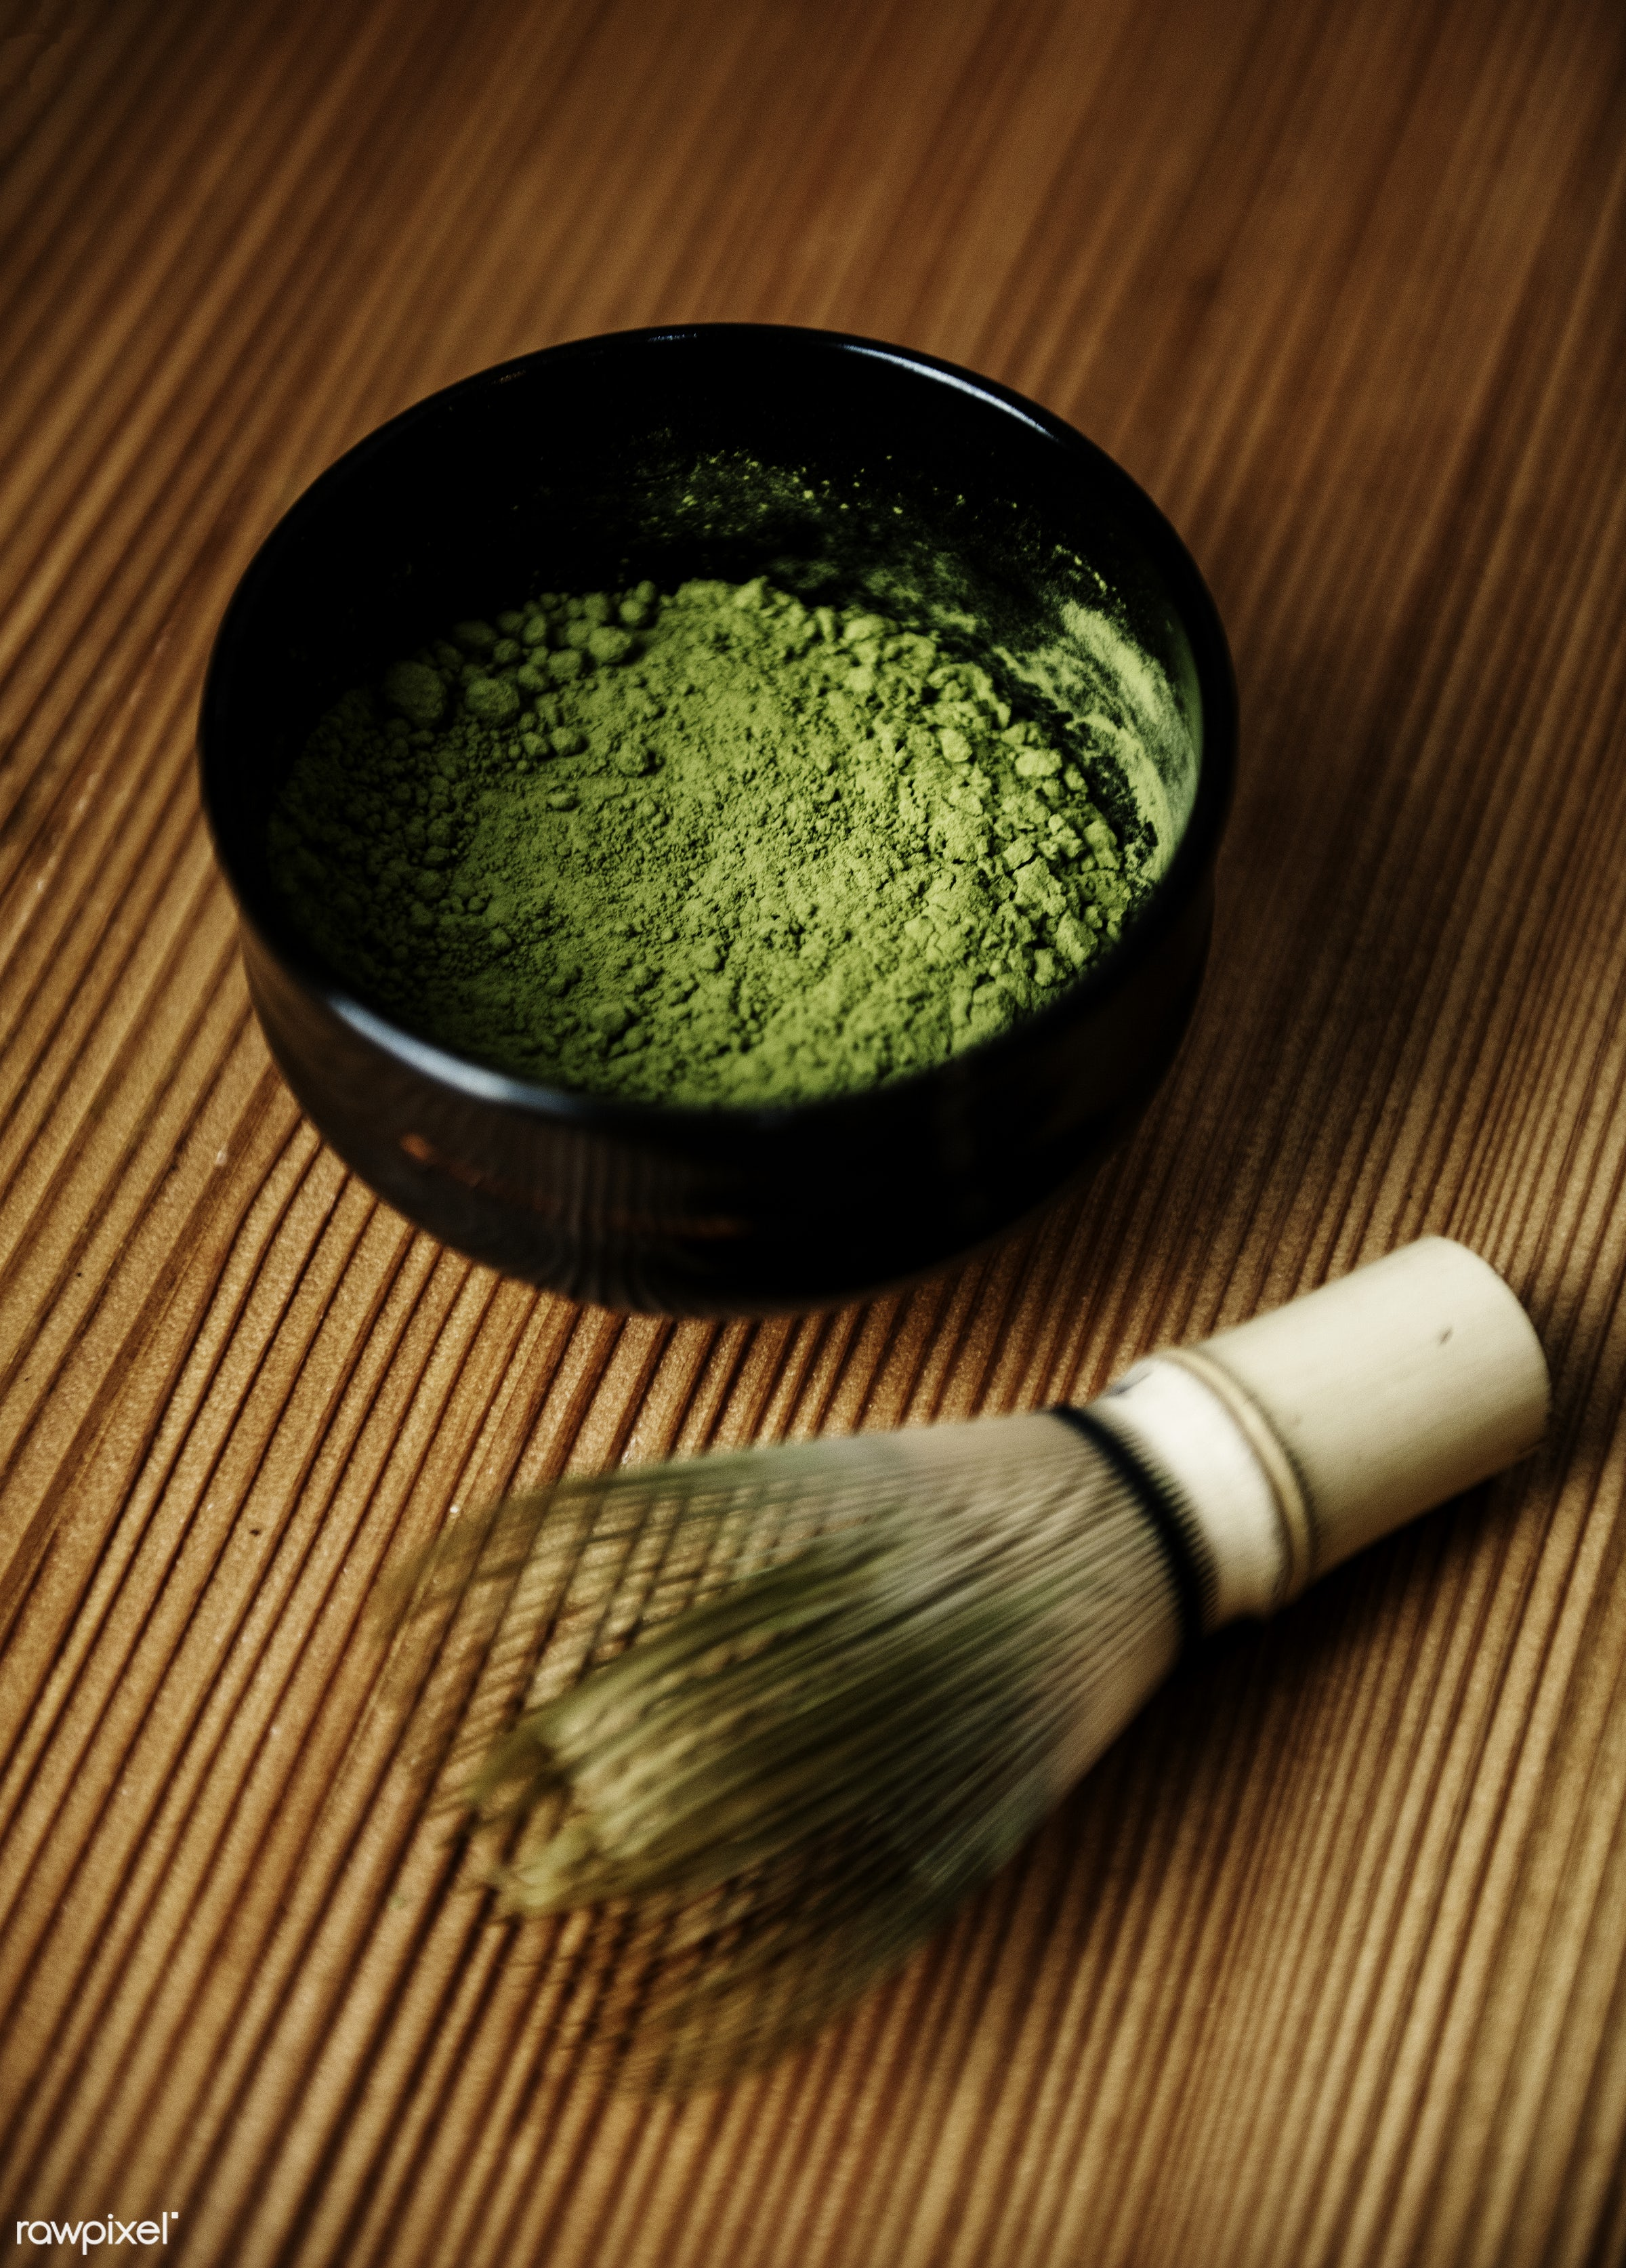 japanese, asian, beverage, ceremony, culture, drink, gourmet, green, healthy, herbal, ingredient, lifestyle, matcha, organic...